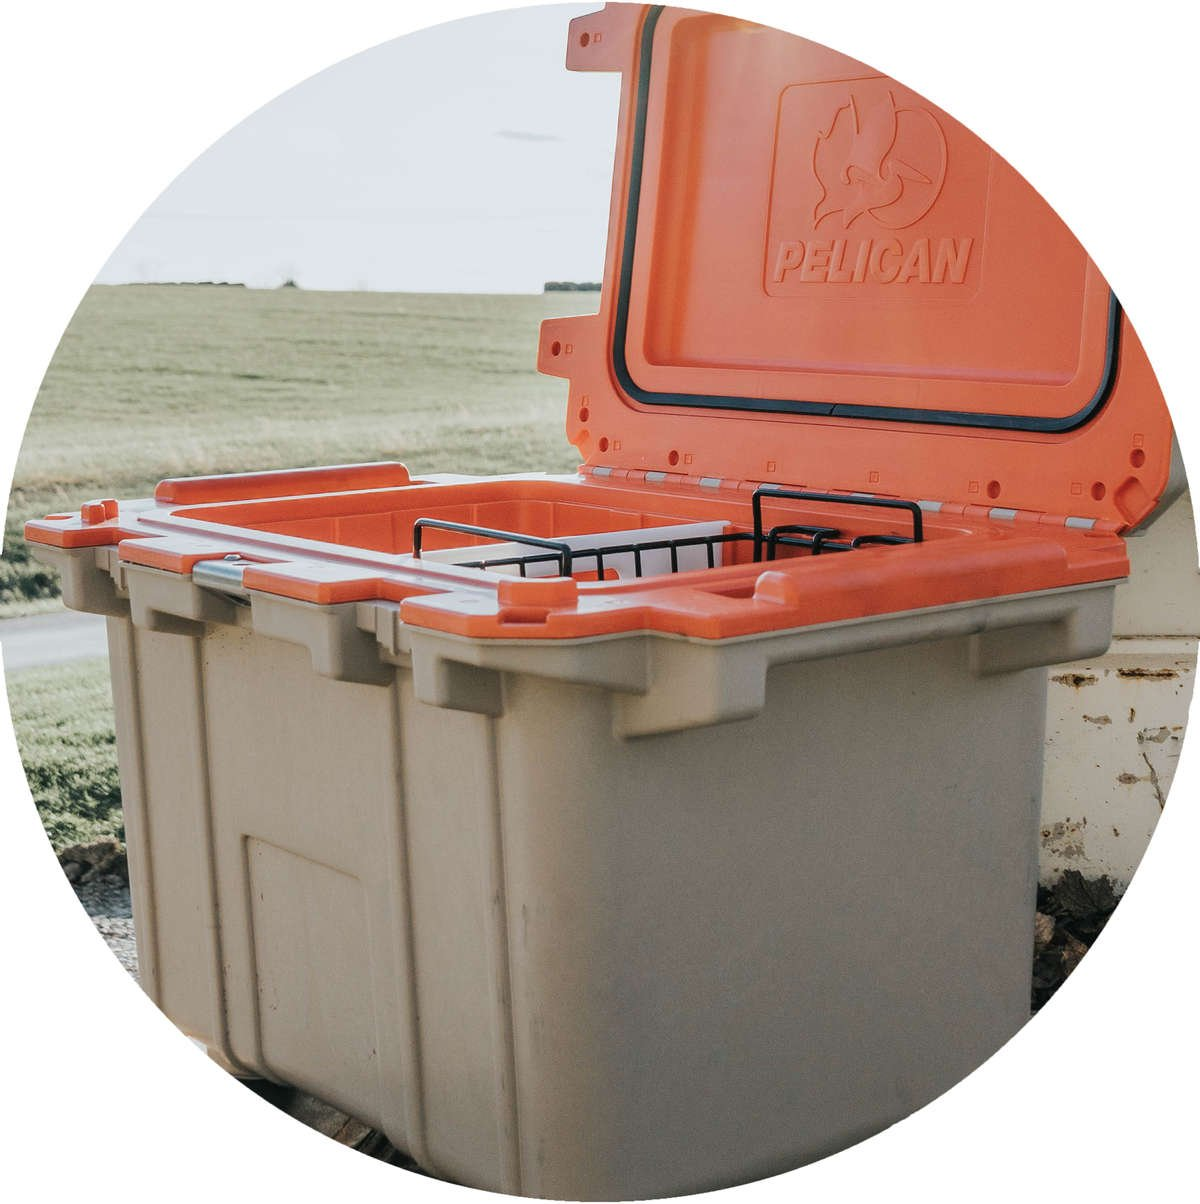 A 50QT Elite Cooler is open. Inside there is a 50/70 Quart Small Dry Rack Basket next to a cooler divider.